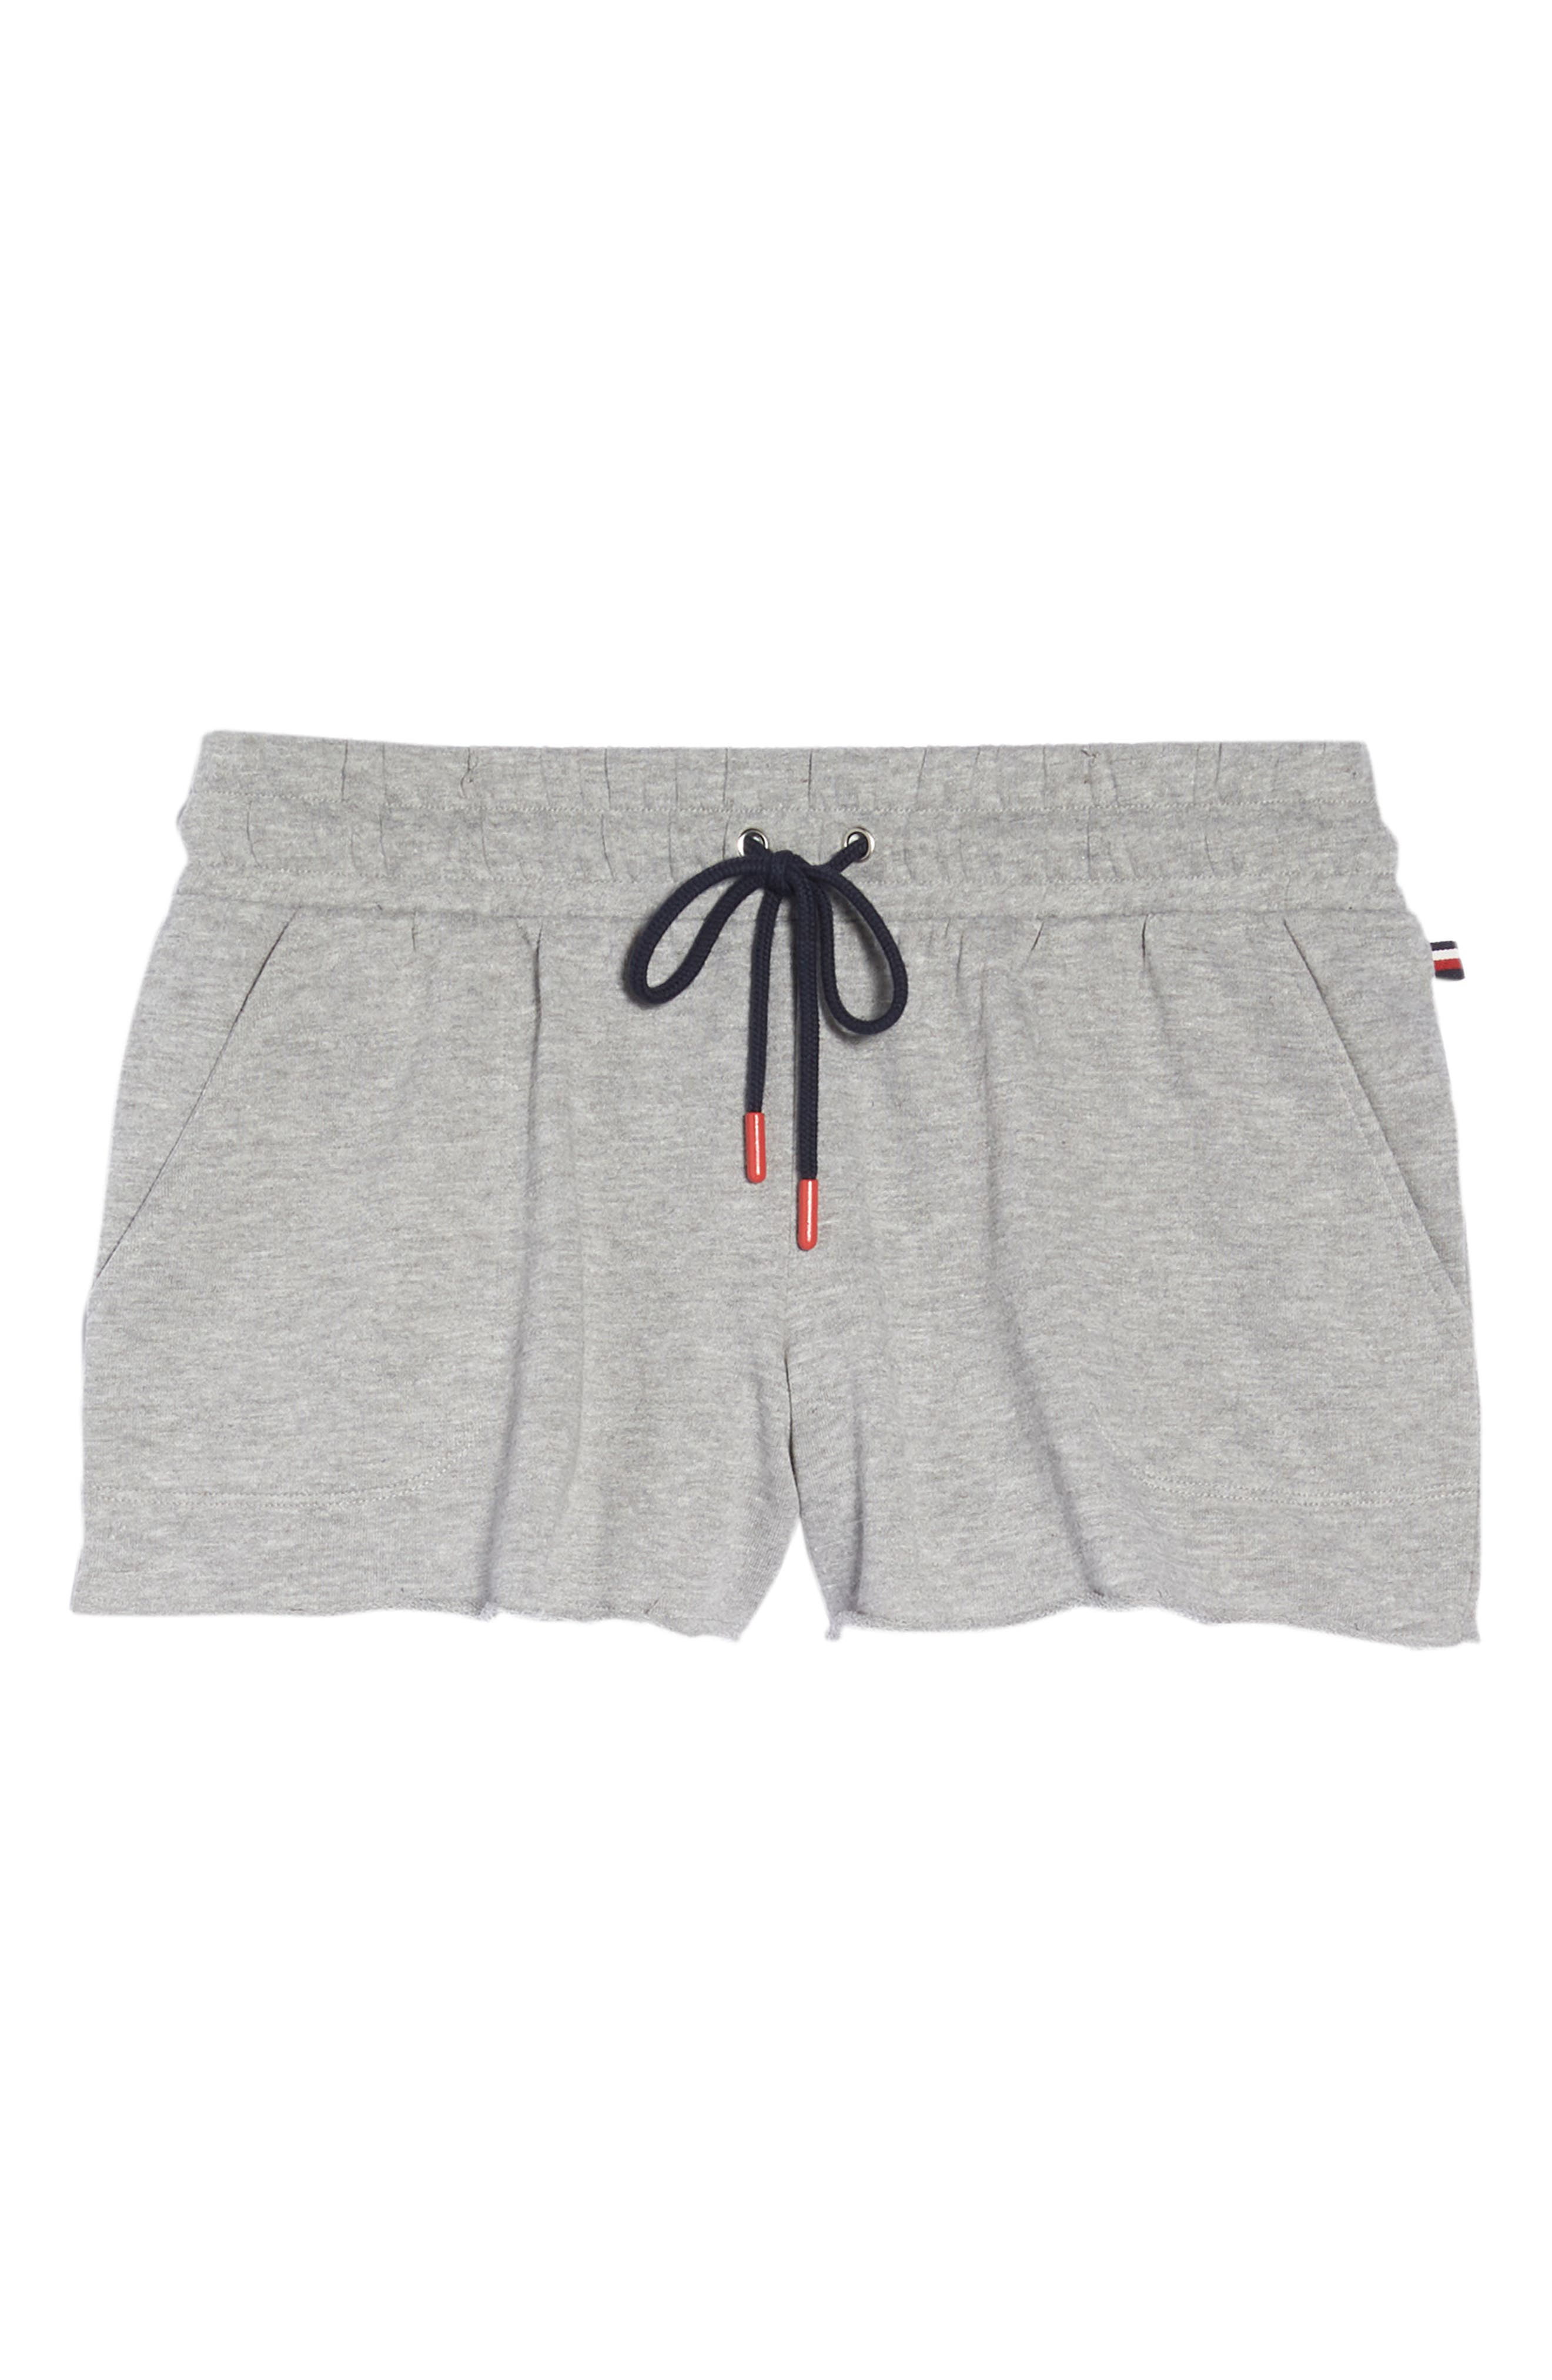 Raw Edge Pajama Shorts,                             Alternate thumbnail 6, color,                             020